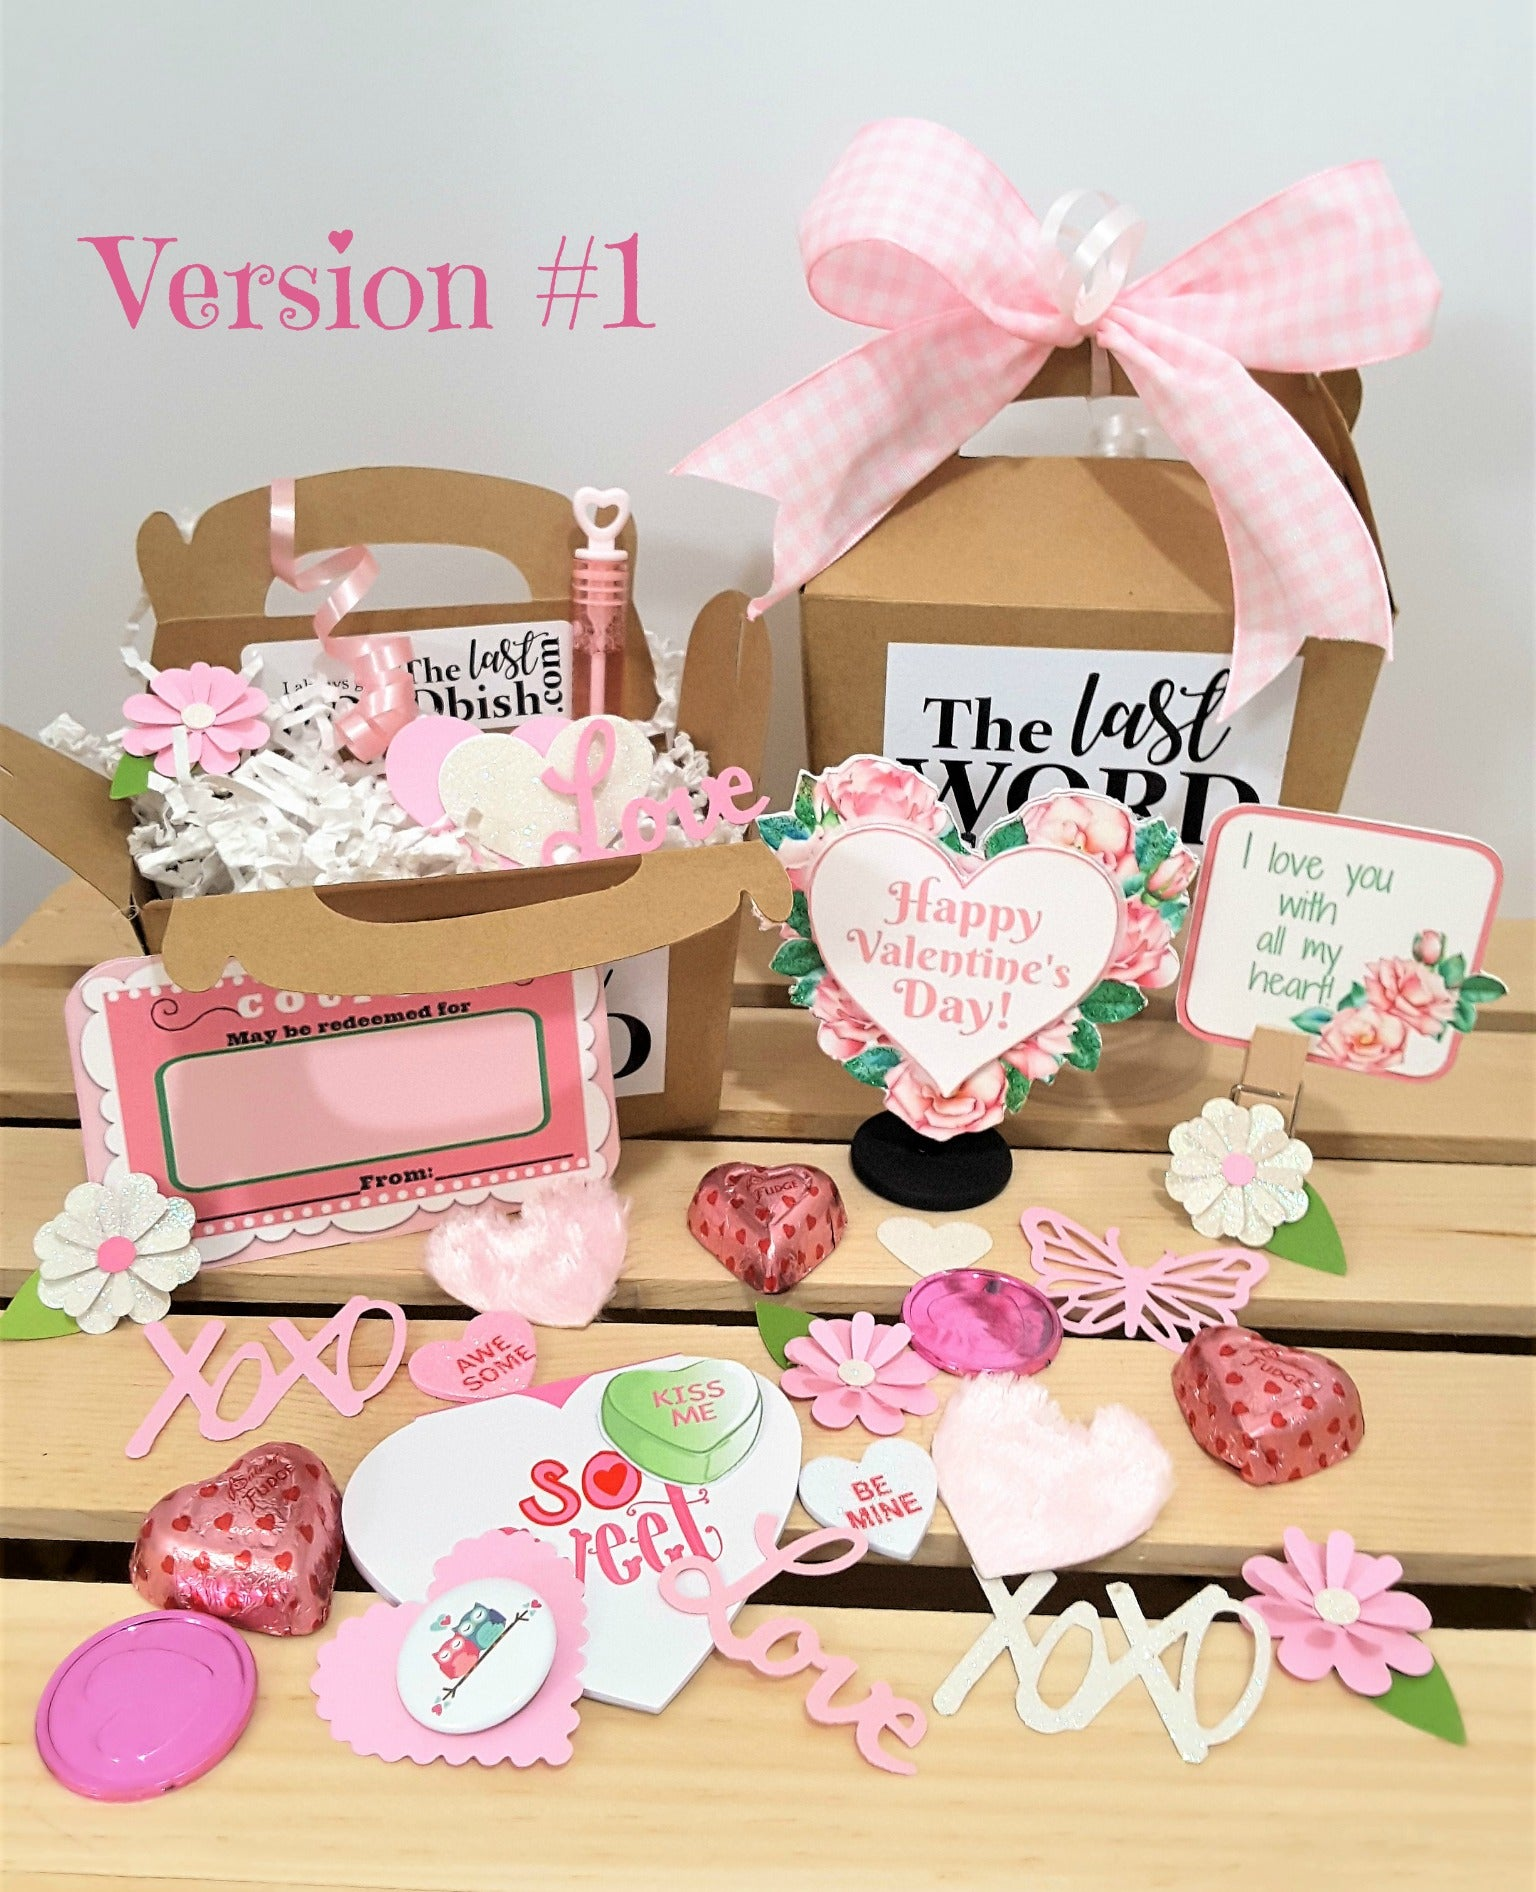 3D VALENTINE'S DAY GREETING CARD GIFT WITH GOODIES